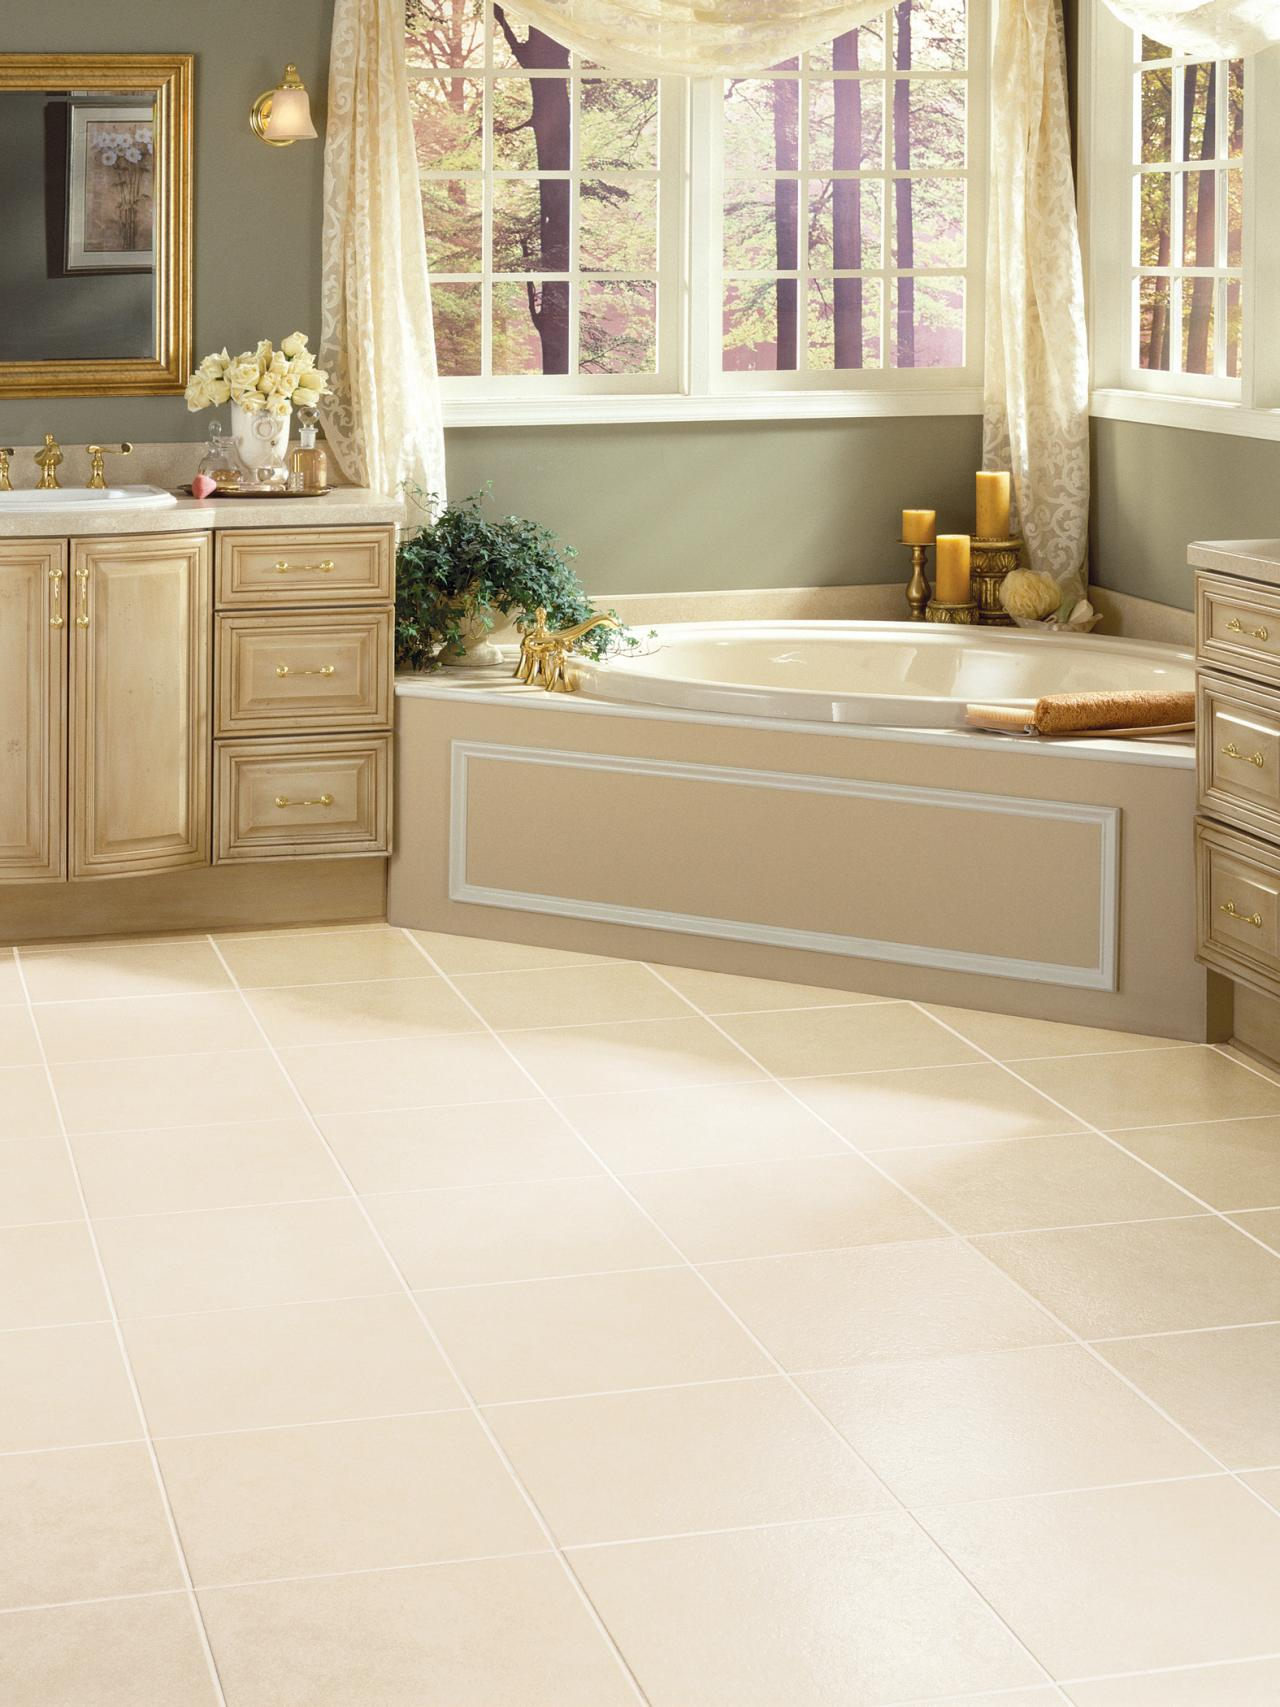 sp0249 heirloom bath 02 s3x4 rend hgtvcom 1280 1707 17336